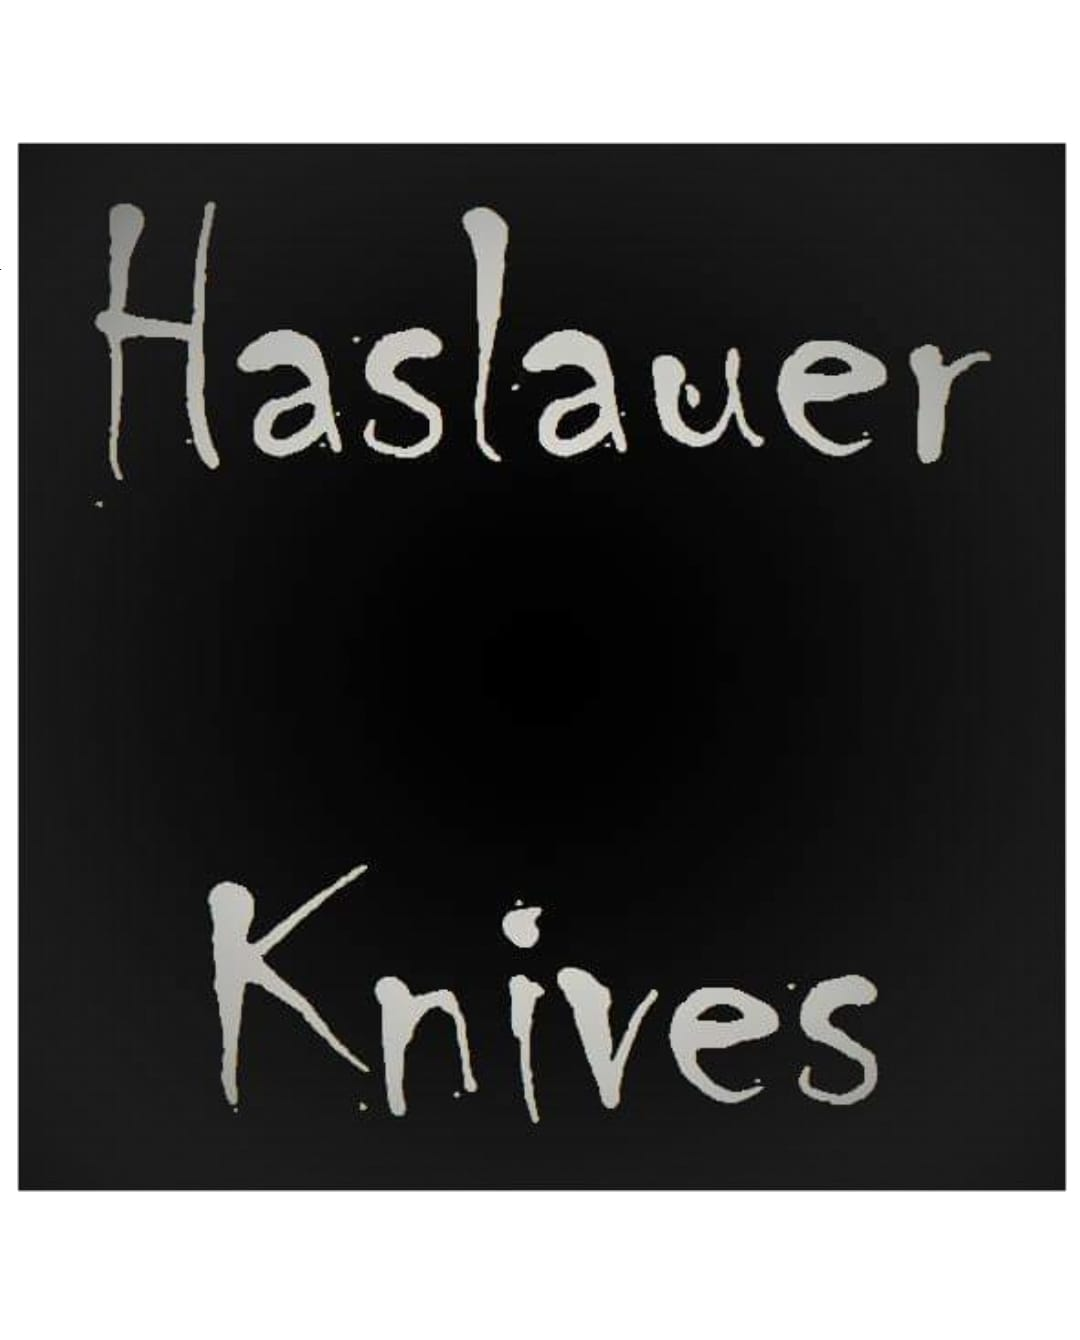 Haslauer Knives